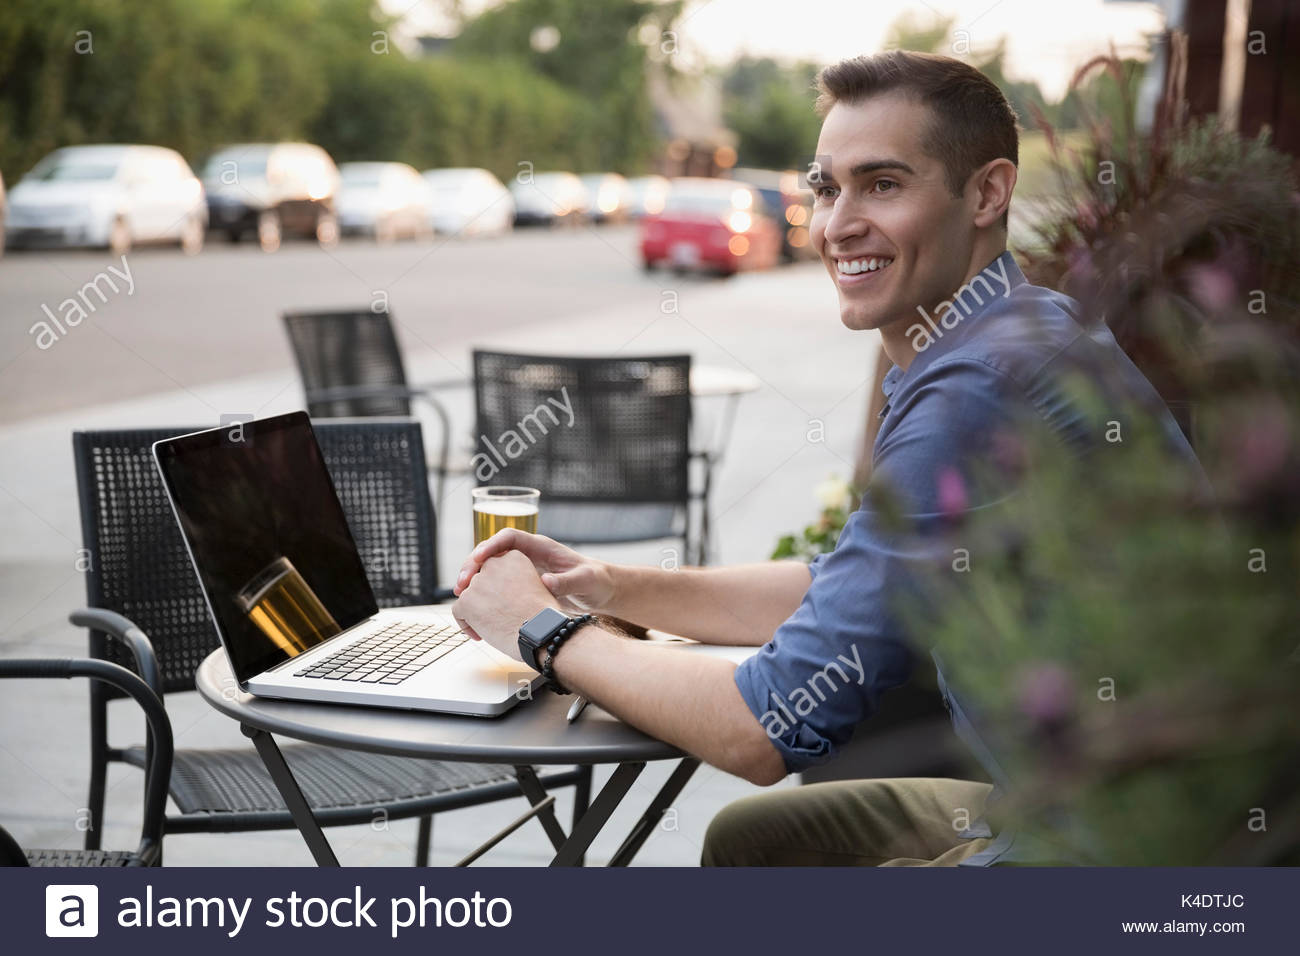 Smiling man drinking beer and using laptop at sidewalk cafe Photo Stock